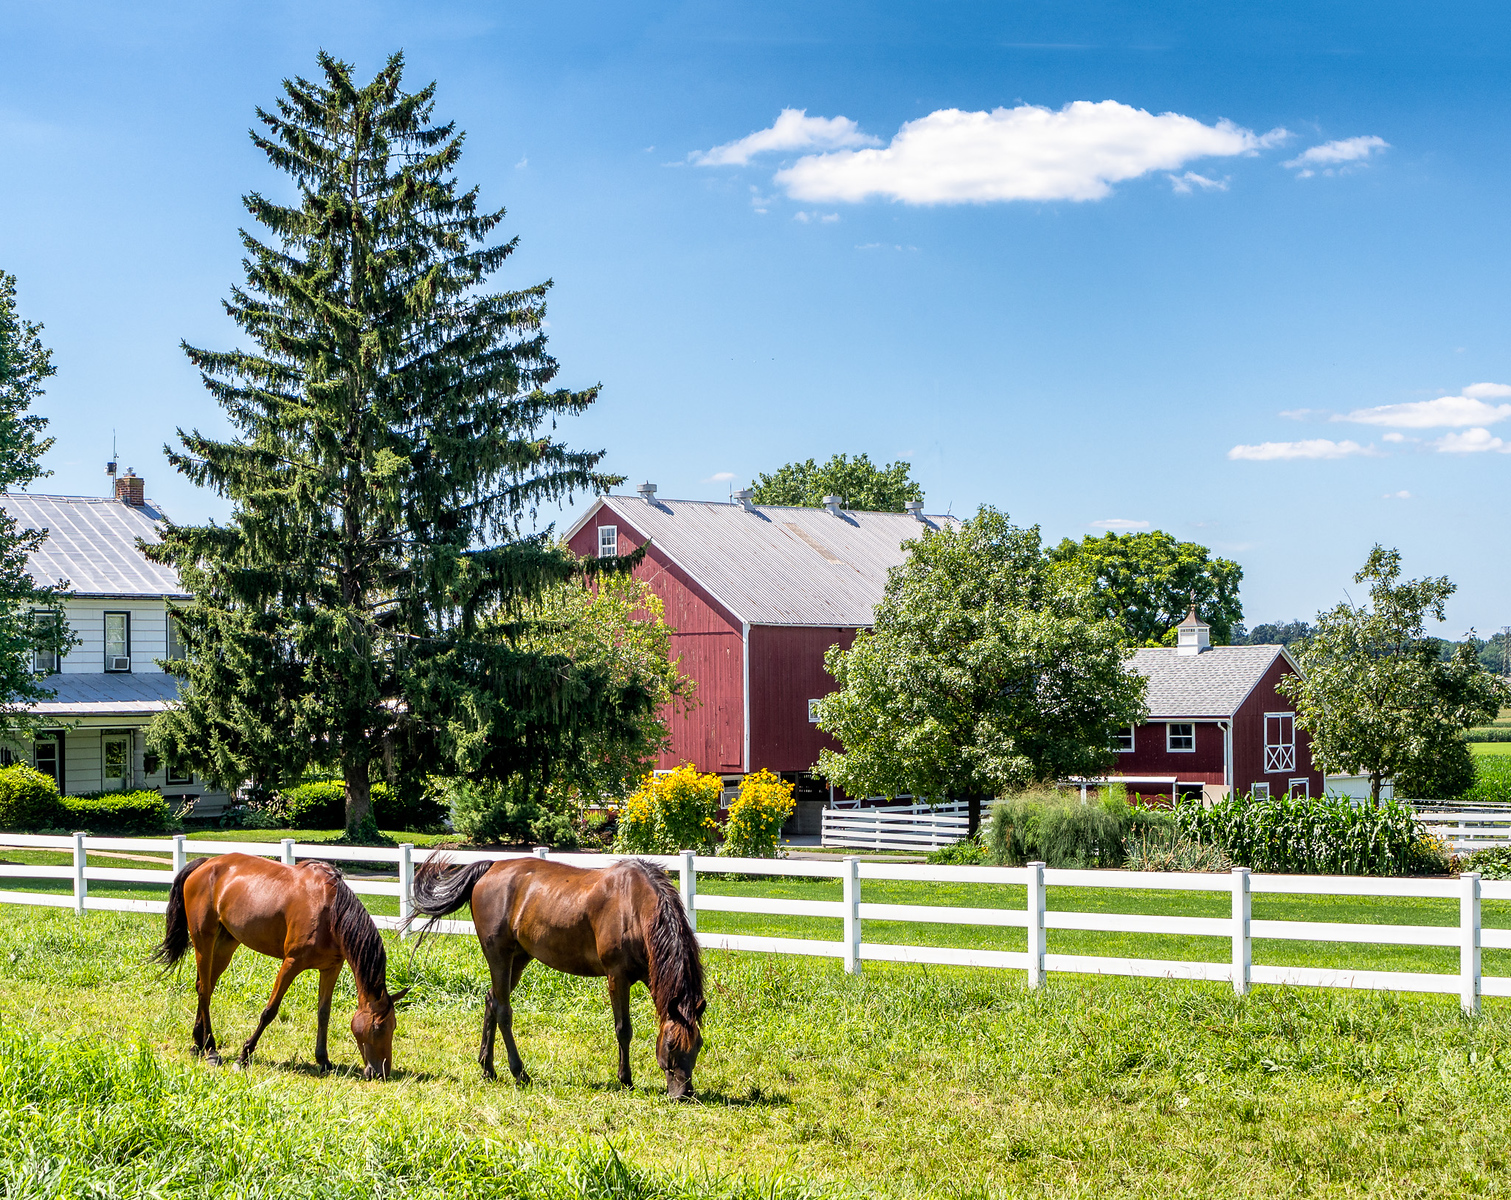 Two Horses, White Rail Fence & Red Barn